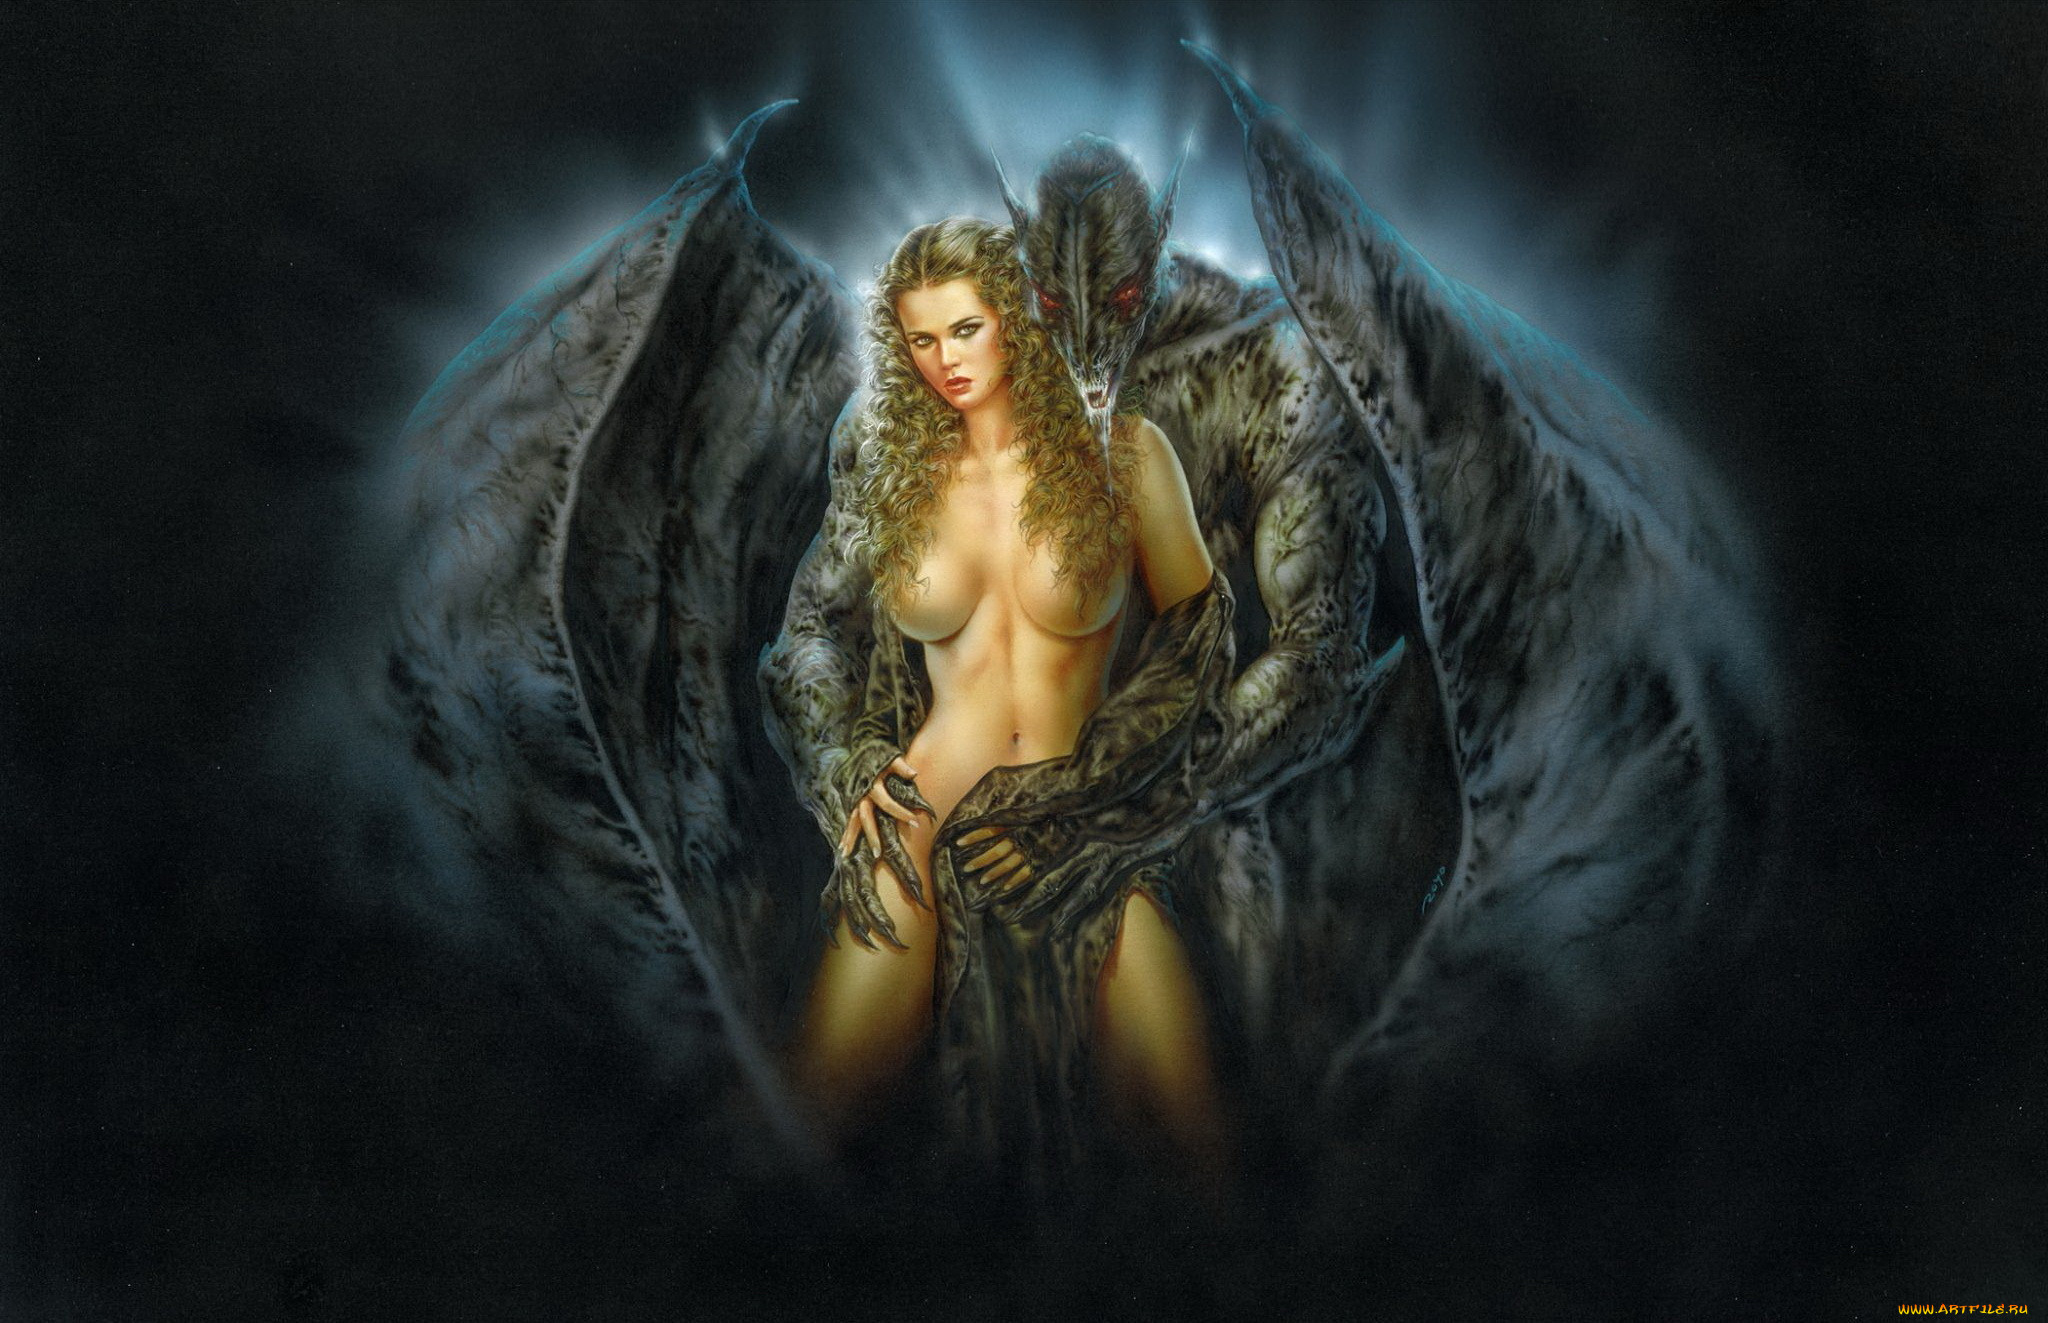 Dark fantasy artwork nude nude gallery